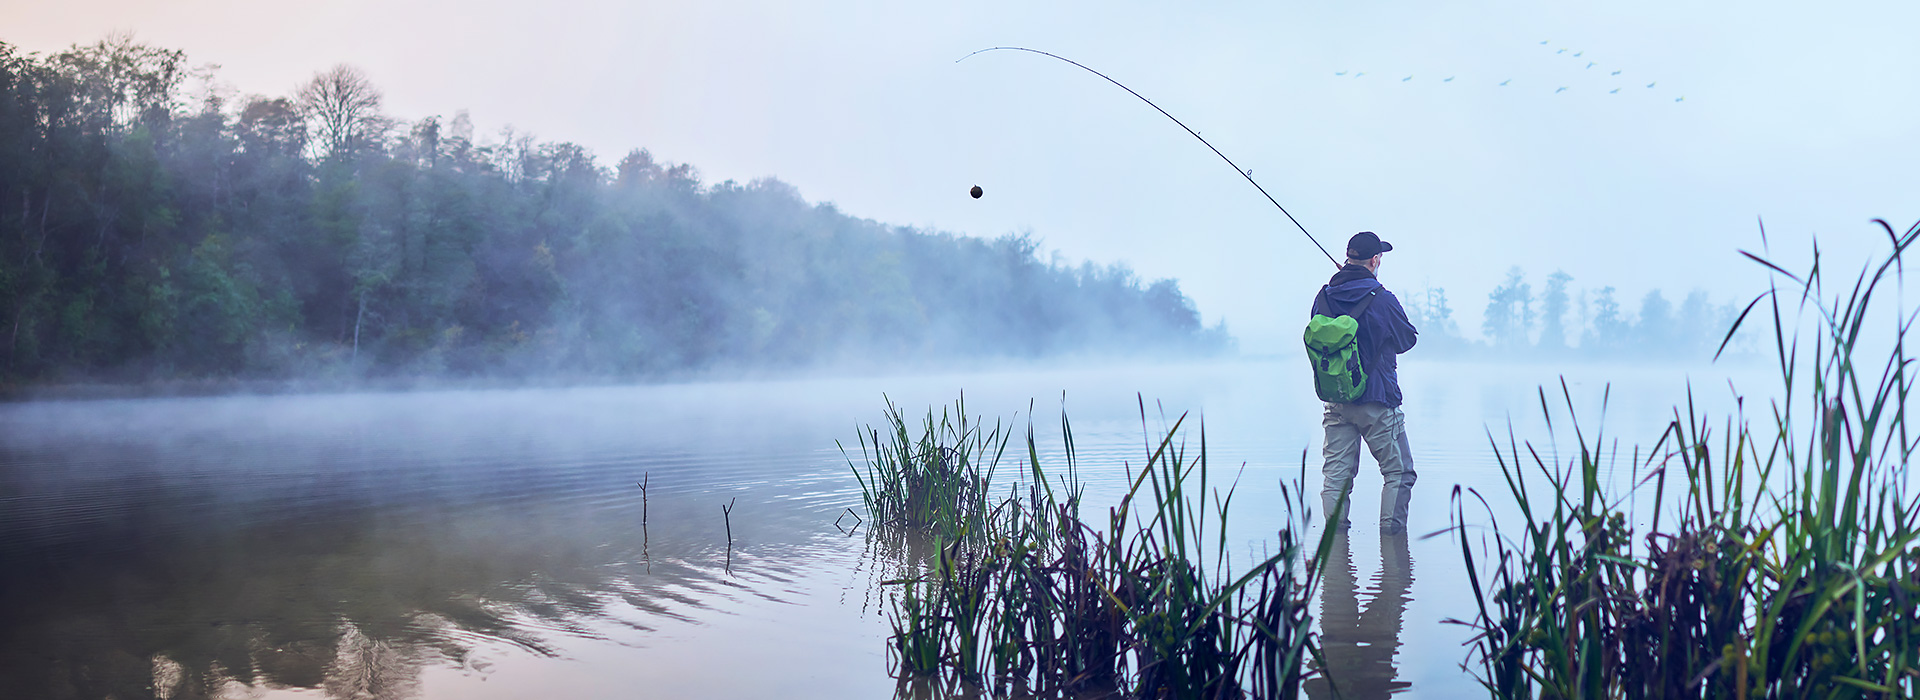 Prepare yourself for the upcoming fishing seasonStart fishing smarter from only €189.99!